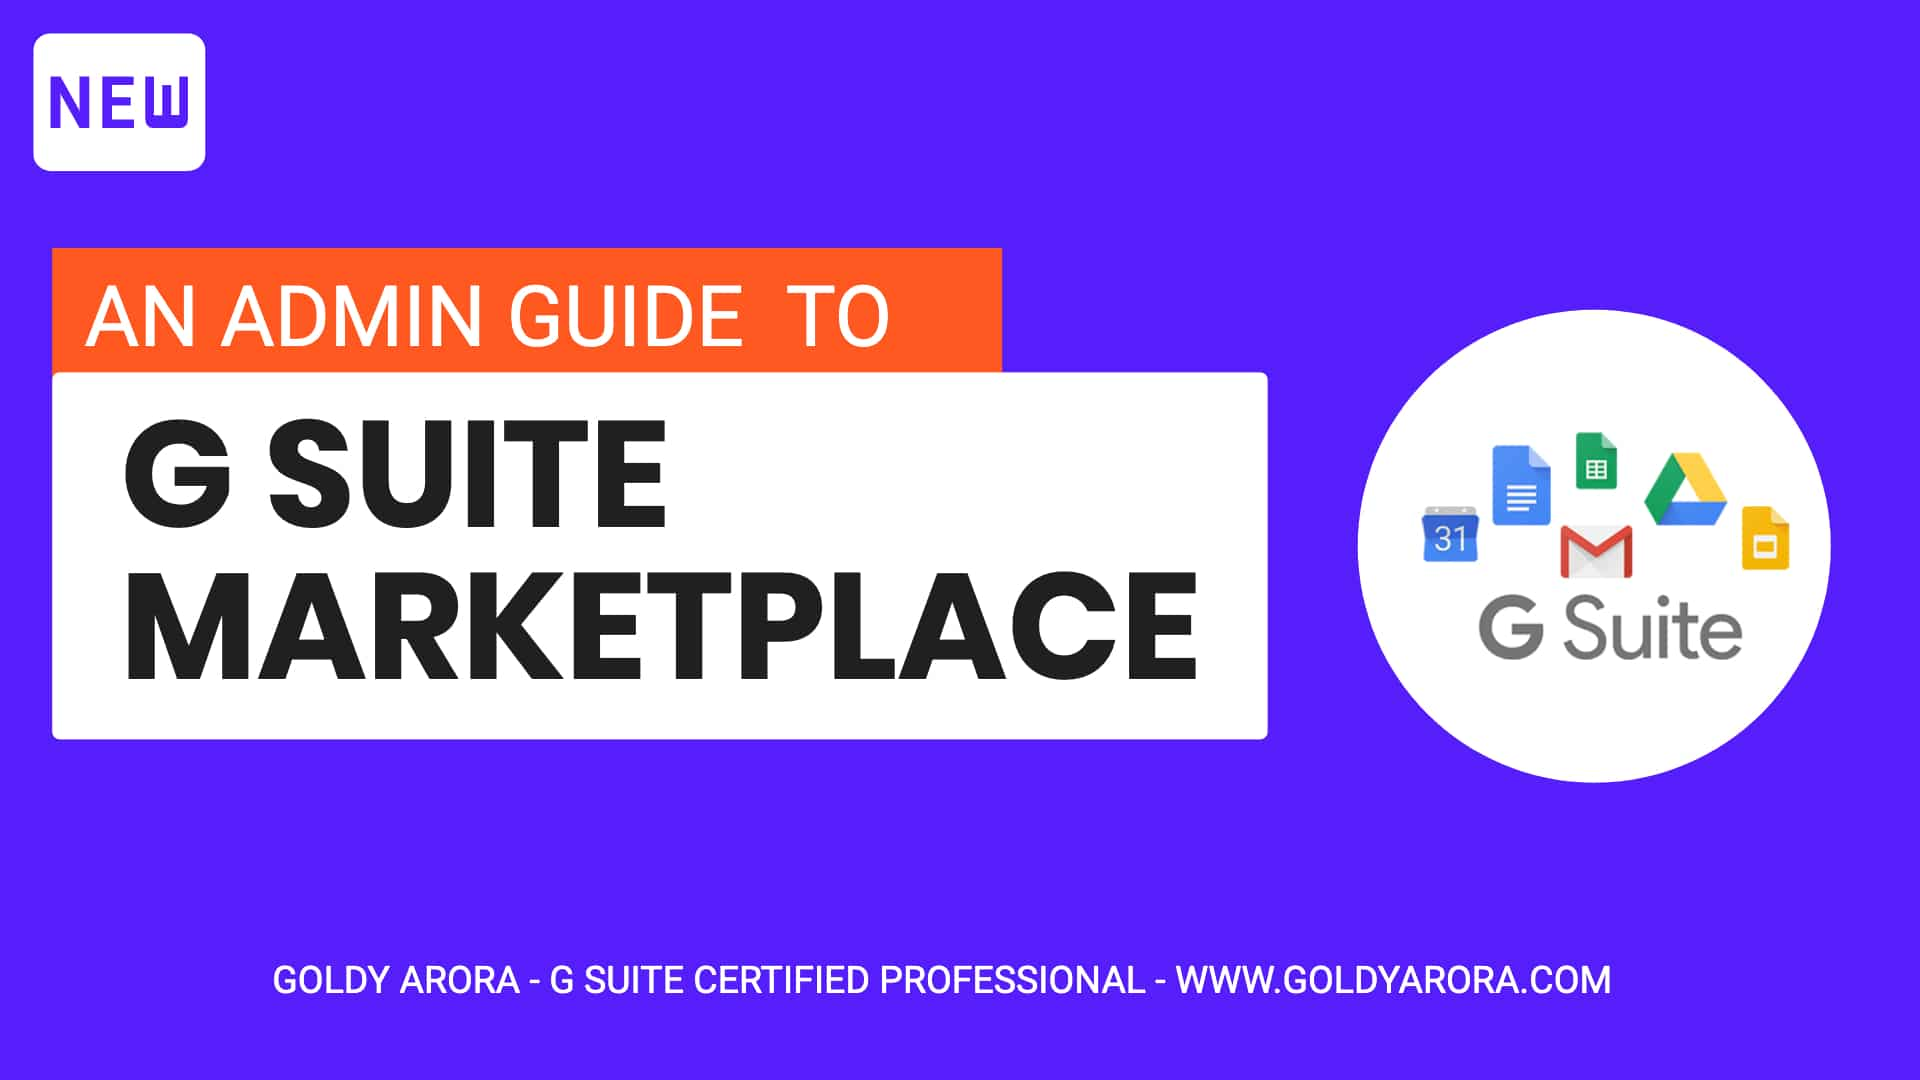 An Admin Guide to Google Workspace Marketplace